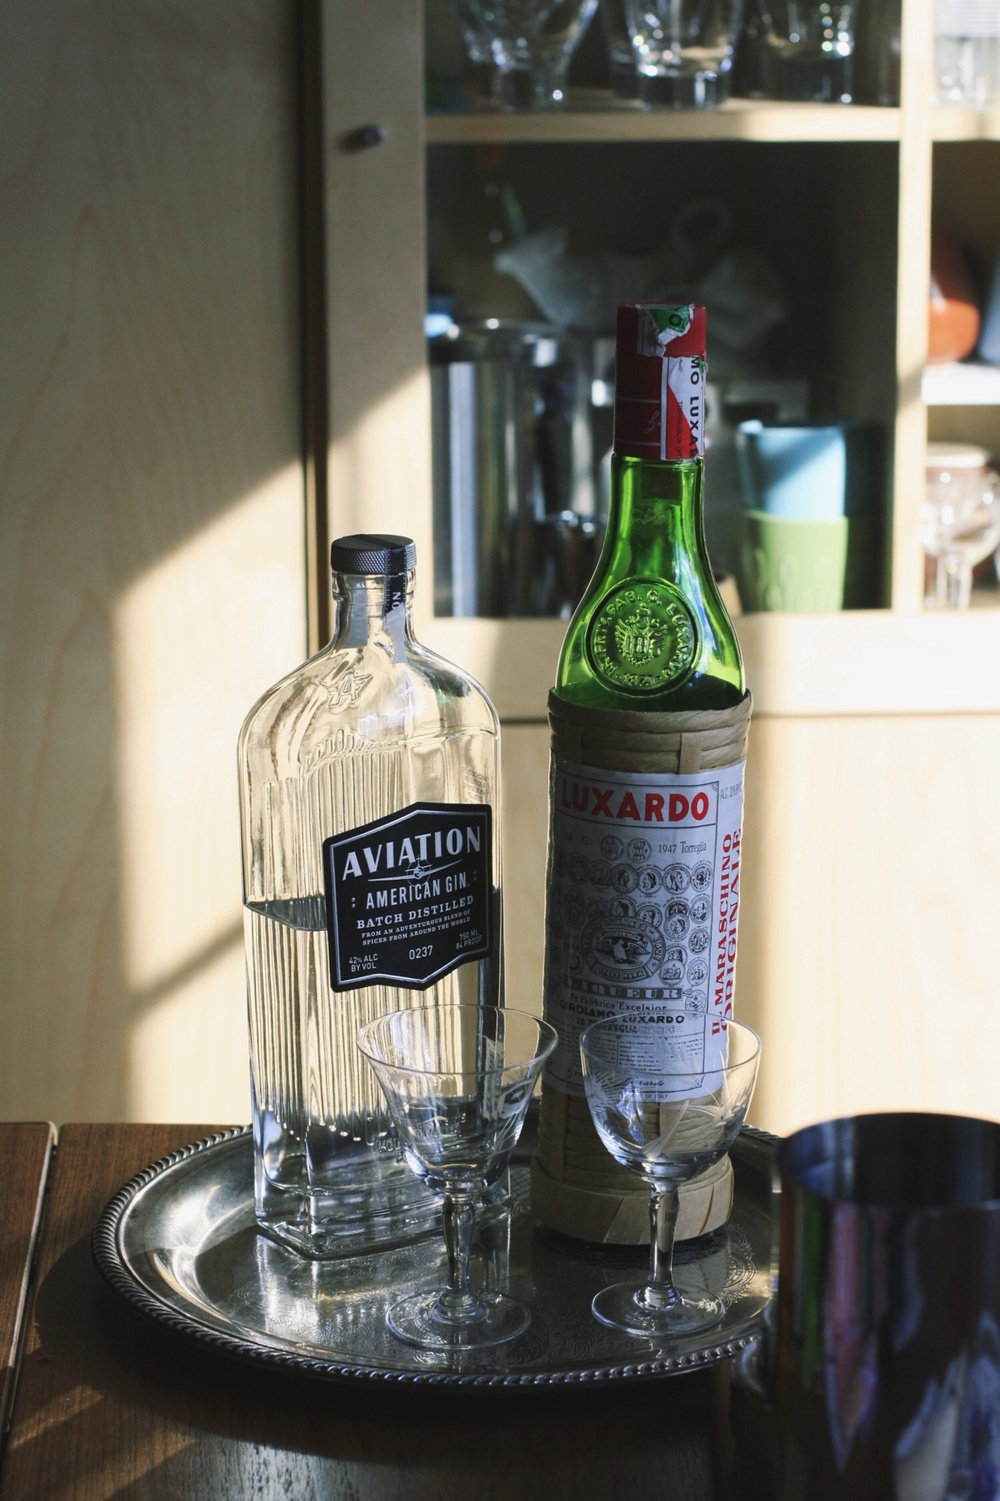 Aviation gin and Maraschino liqueur